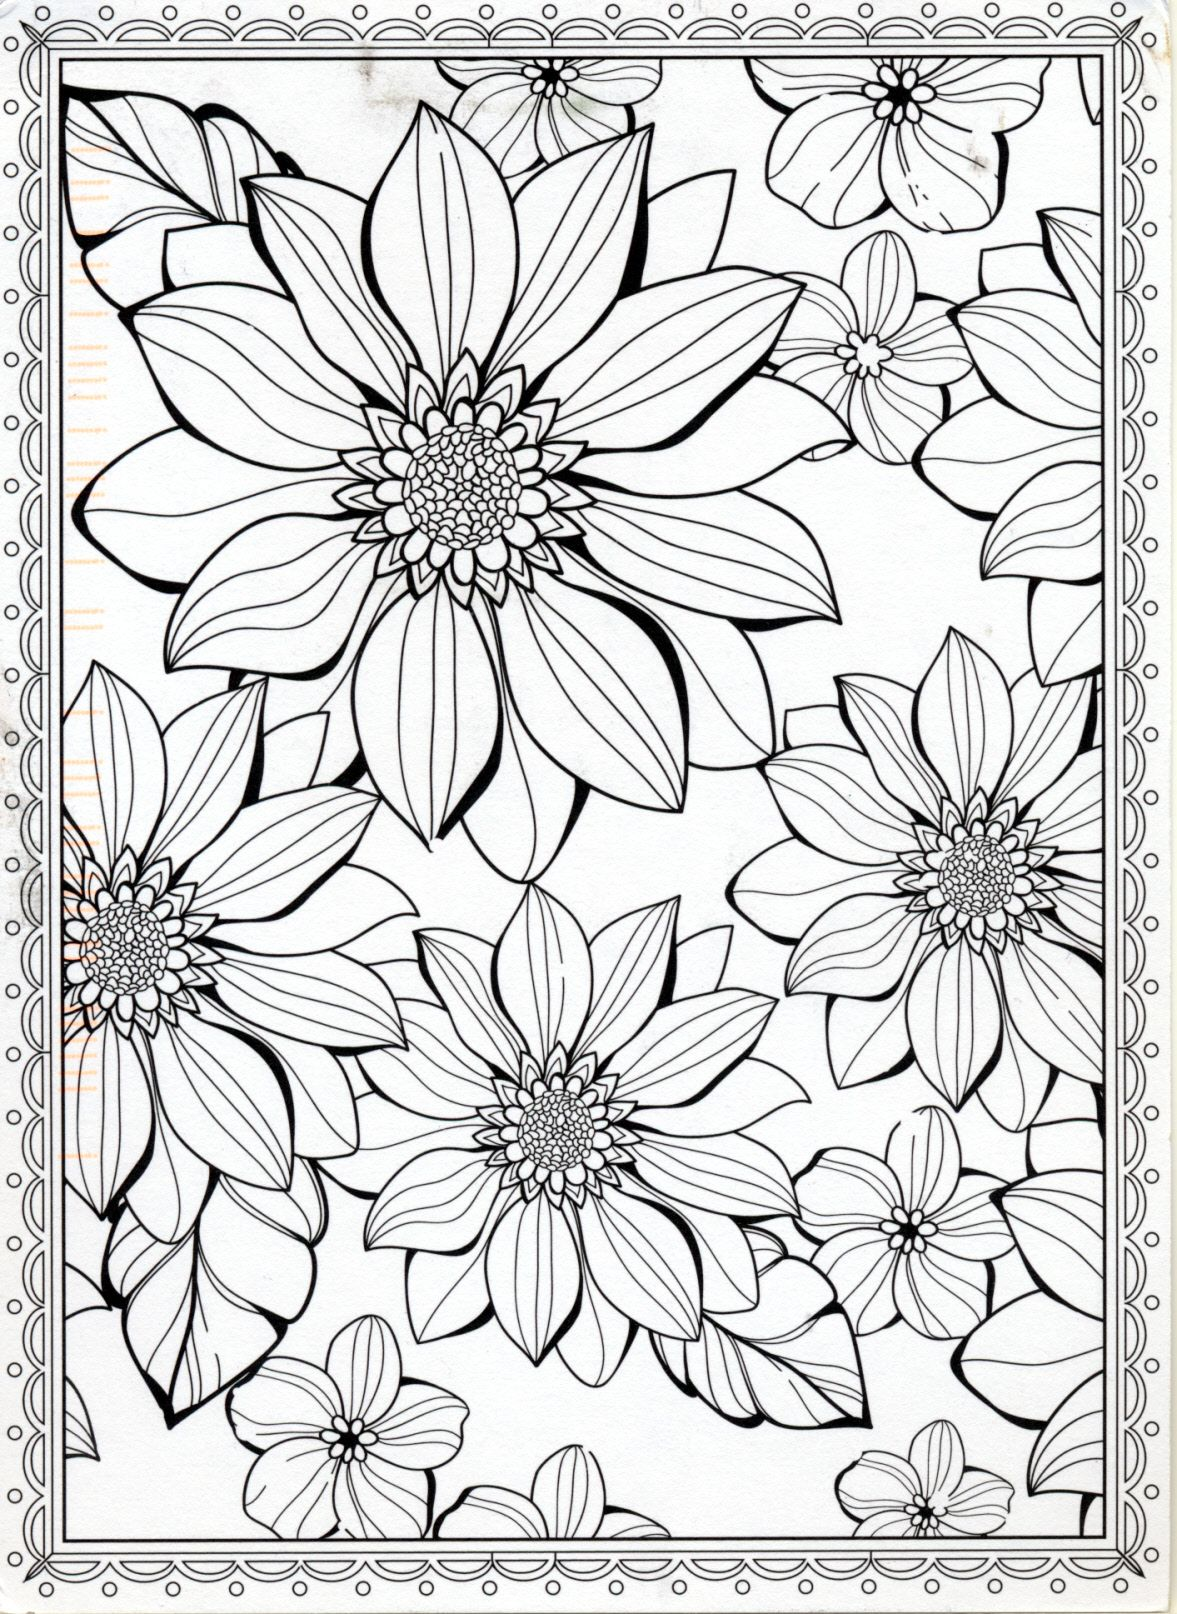 Flowers To Color Postcard From Liane In Rosenheim Germany With